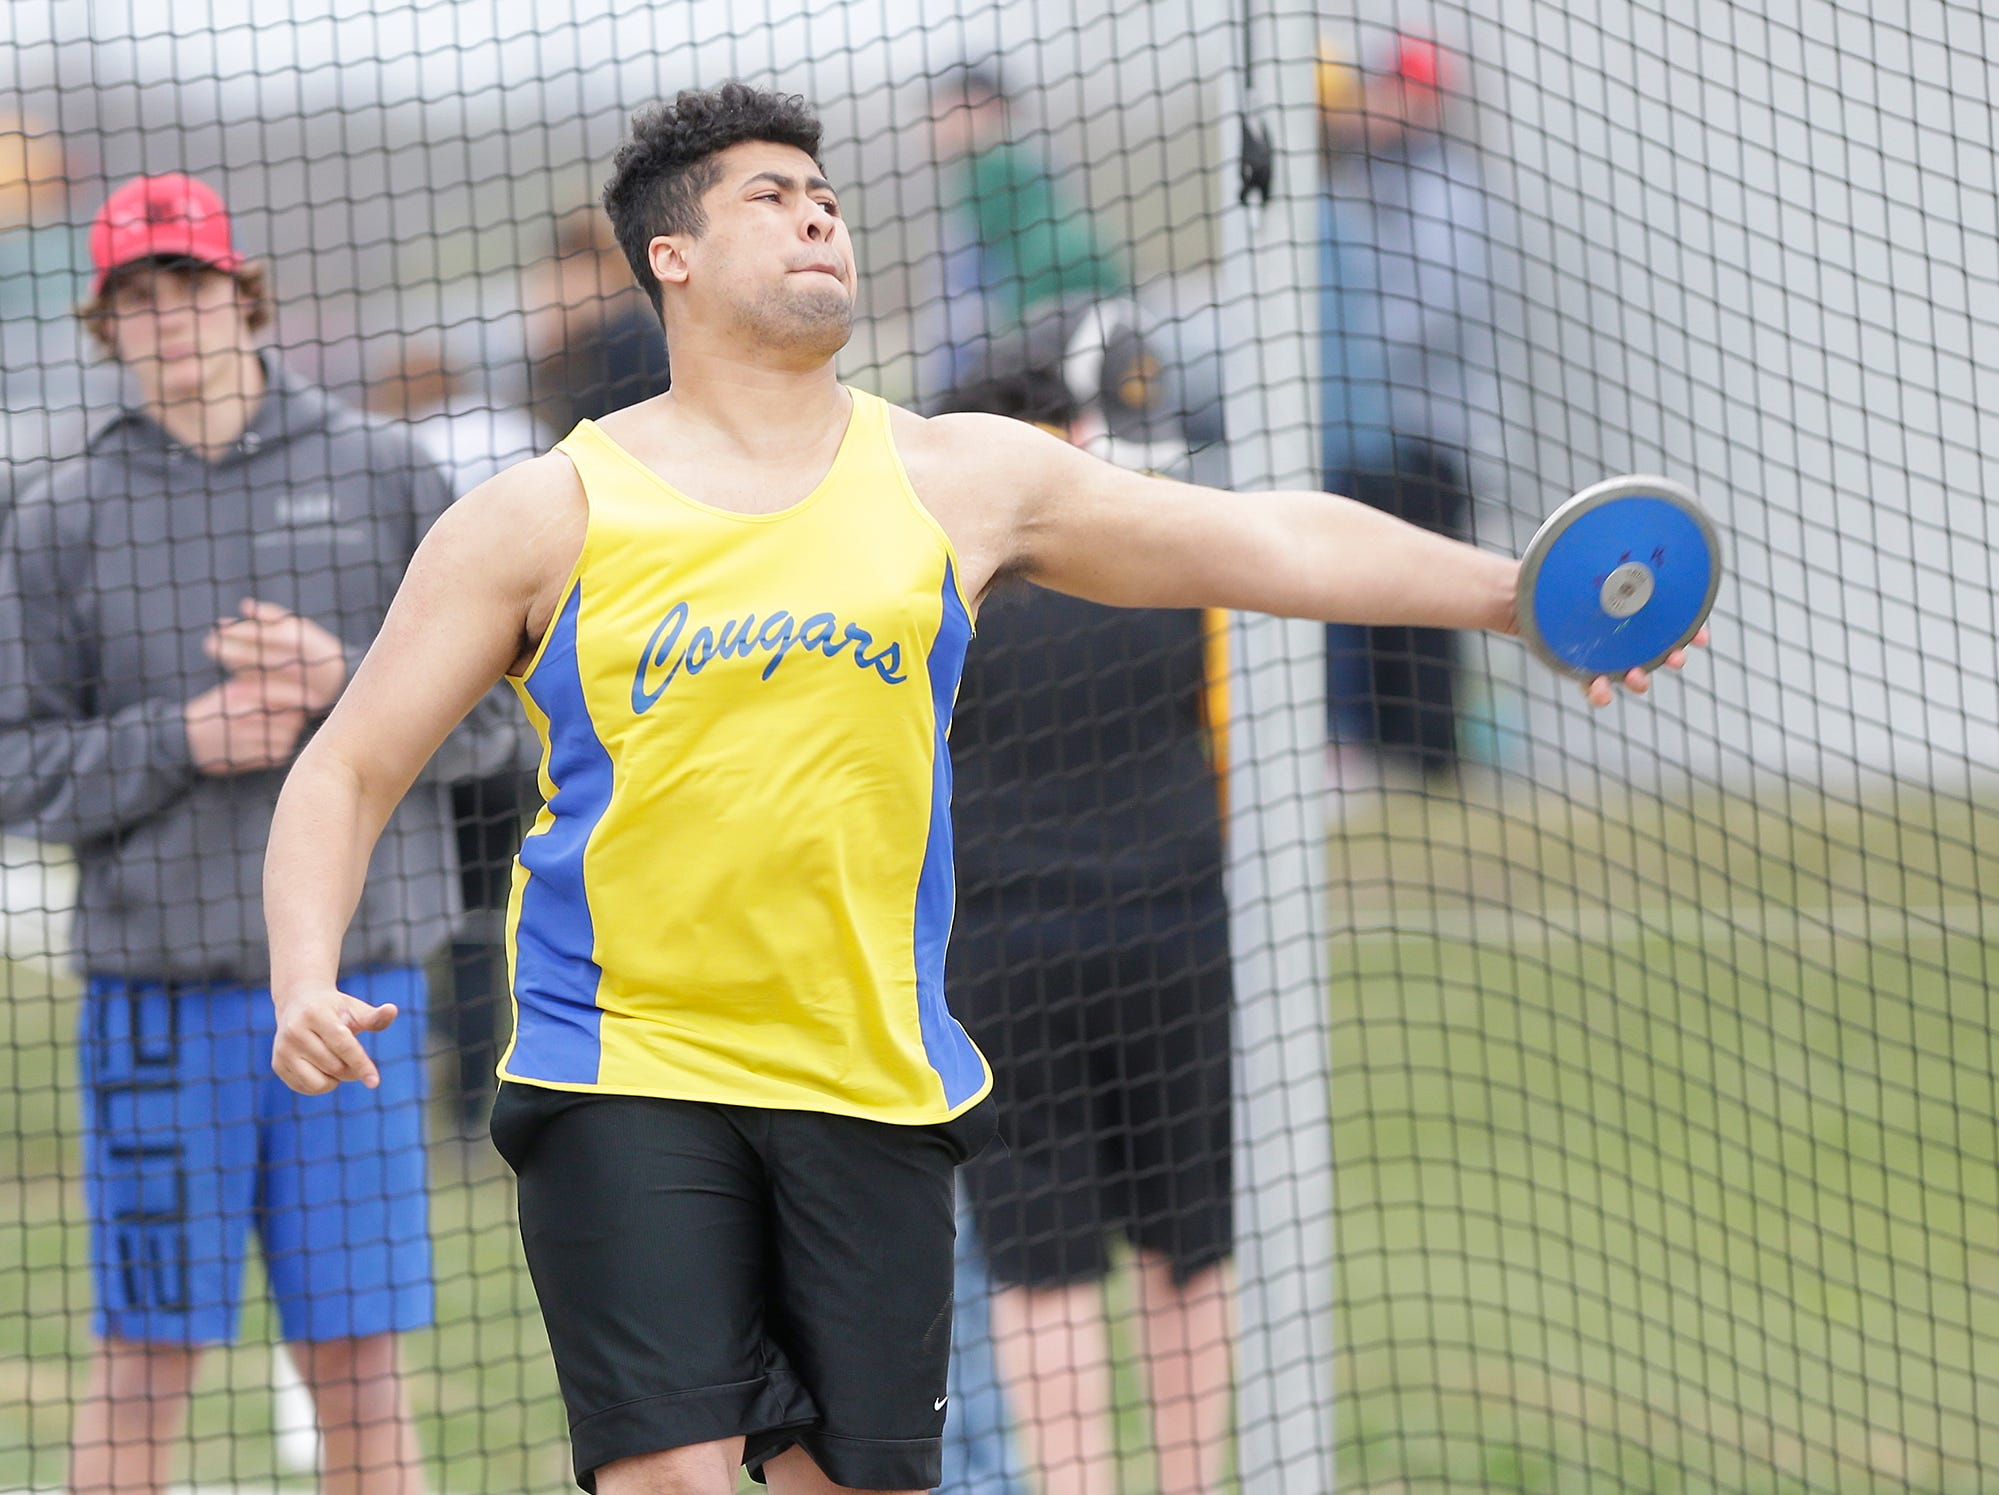 Elijah O'Laughlin of Campbellsport High School competes in the discus throw Friday, May 3, 2019 at the Waupun High School Invitational track and field meet. Doug Raflik/USA TODAY NETWORK-Wisconsin